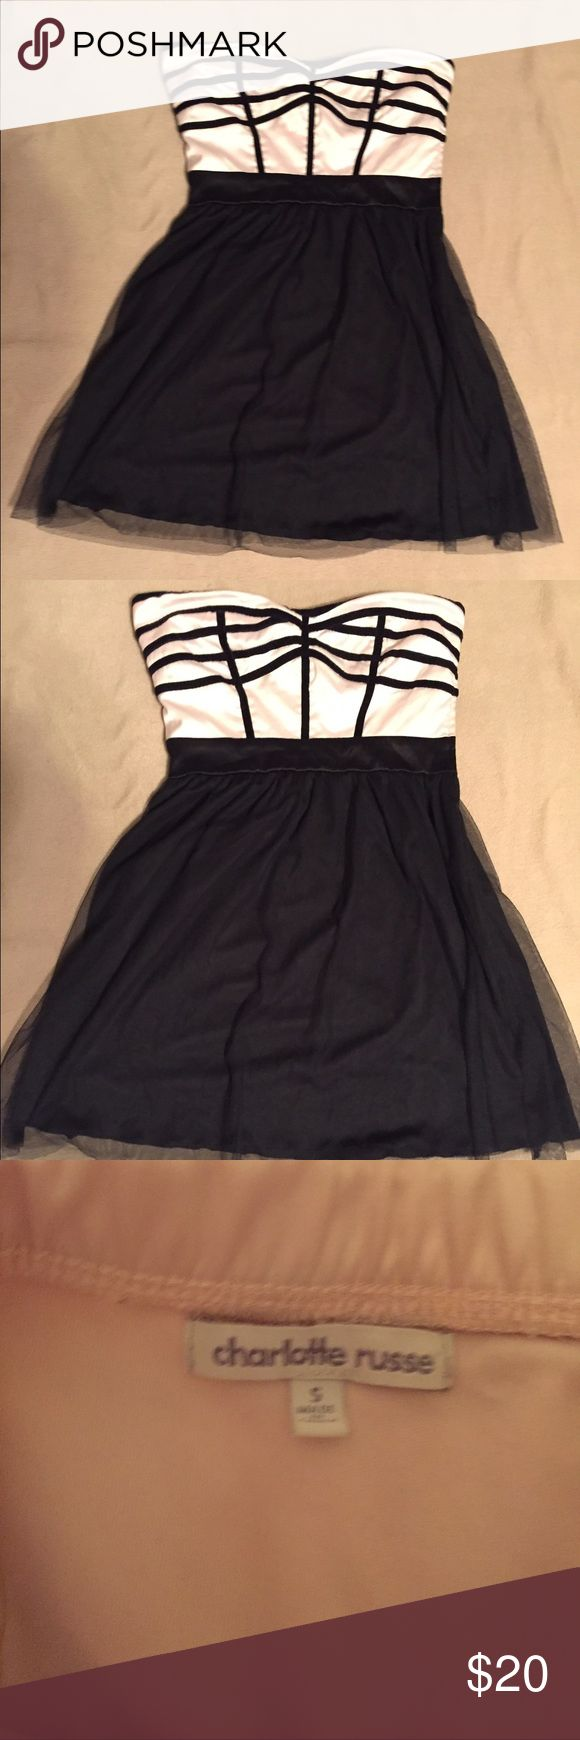 Charlotte Russe Tulle Dress Charlotte Russe dress.  Strapless pink top with black piping and black tulle skirt.  Size Small. Charlotte Russe Dresses Mini